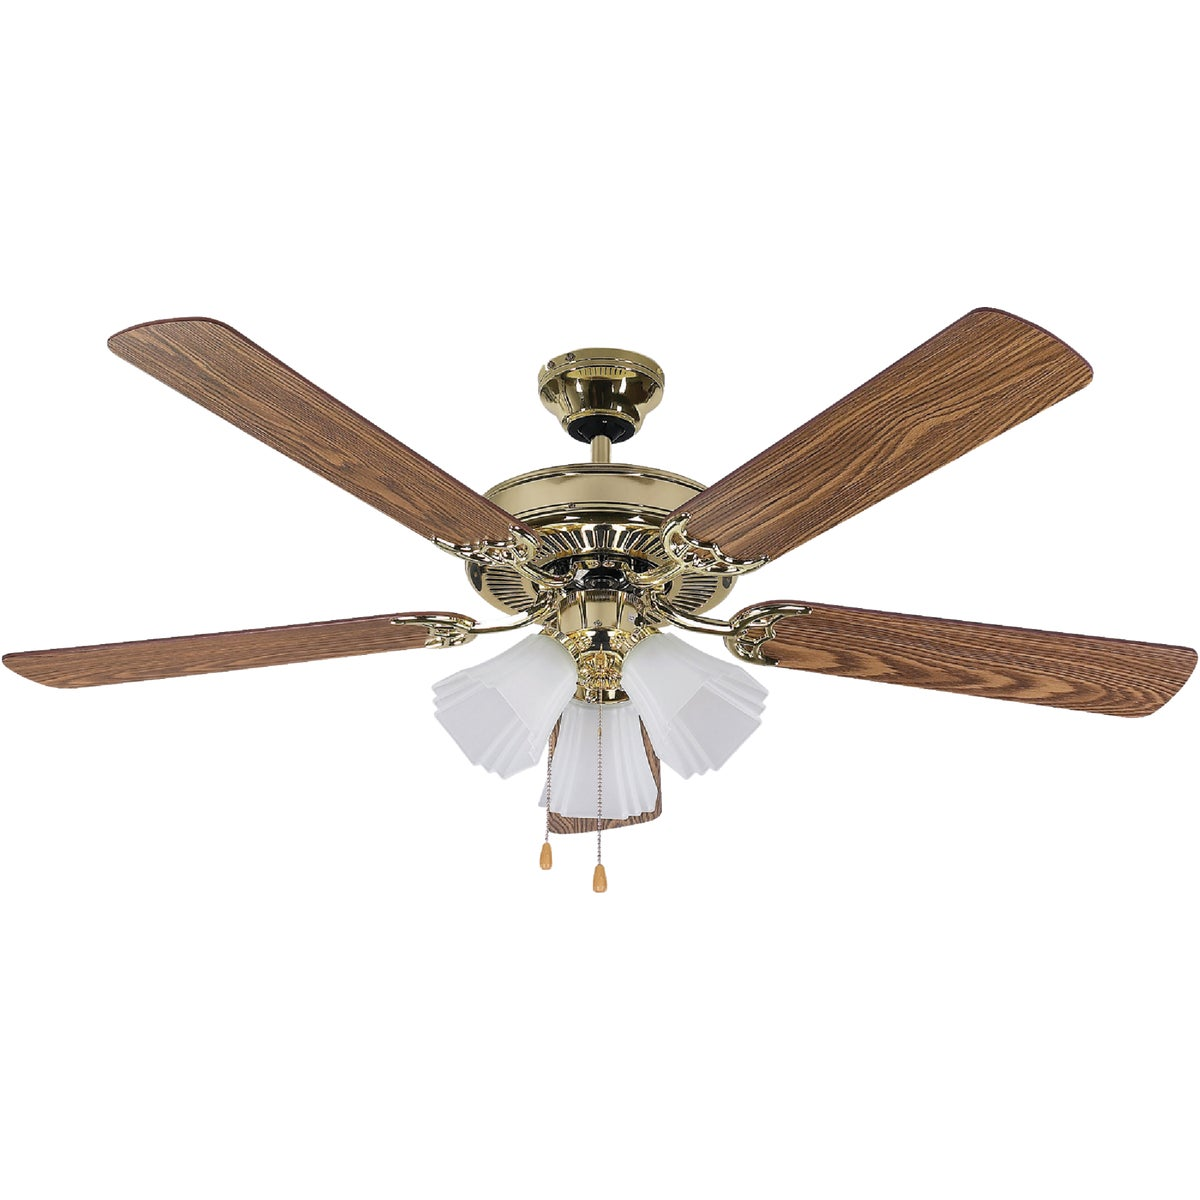 "52"" PB CEILING FAN - CF52SHB45PB by Canarm Gs"